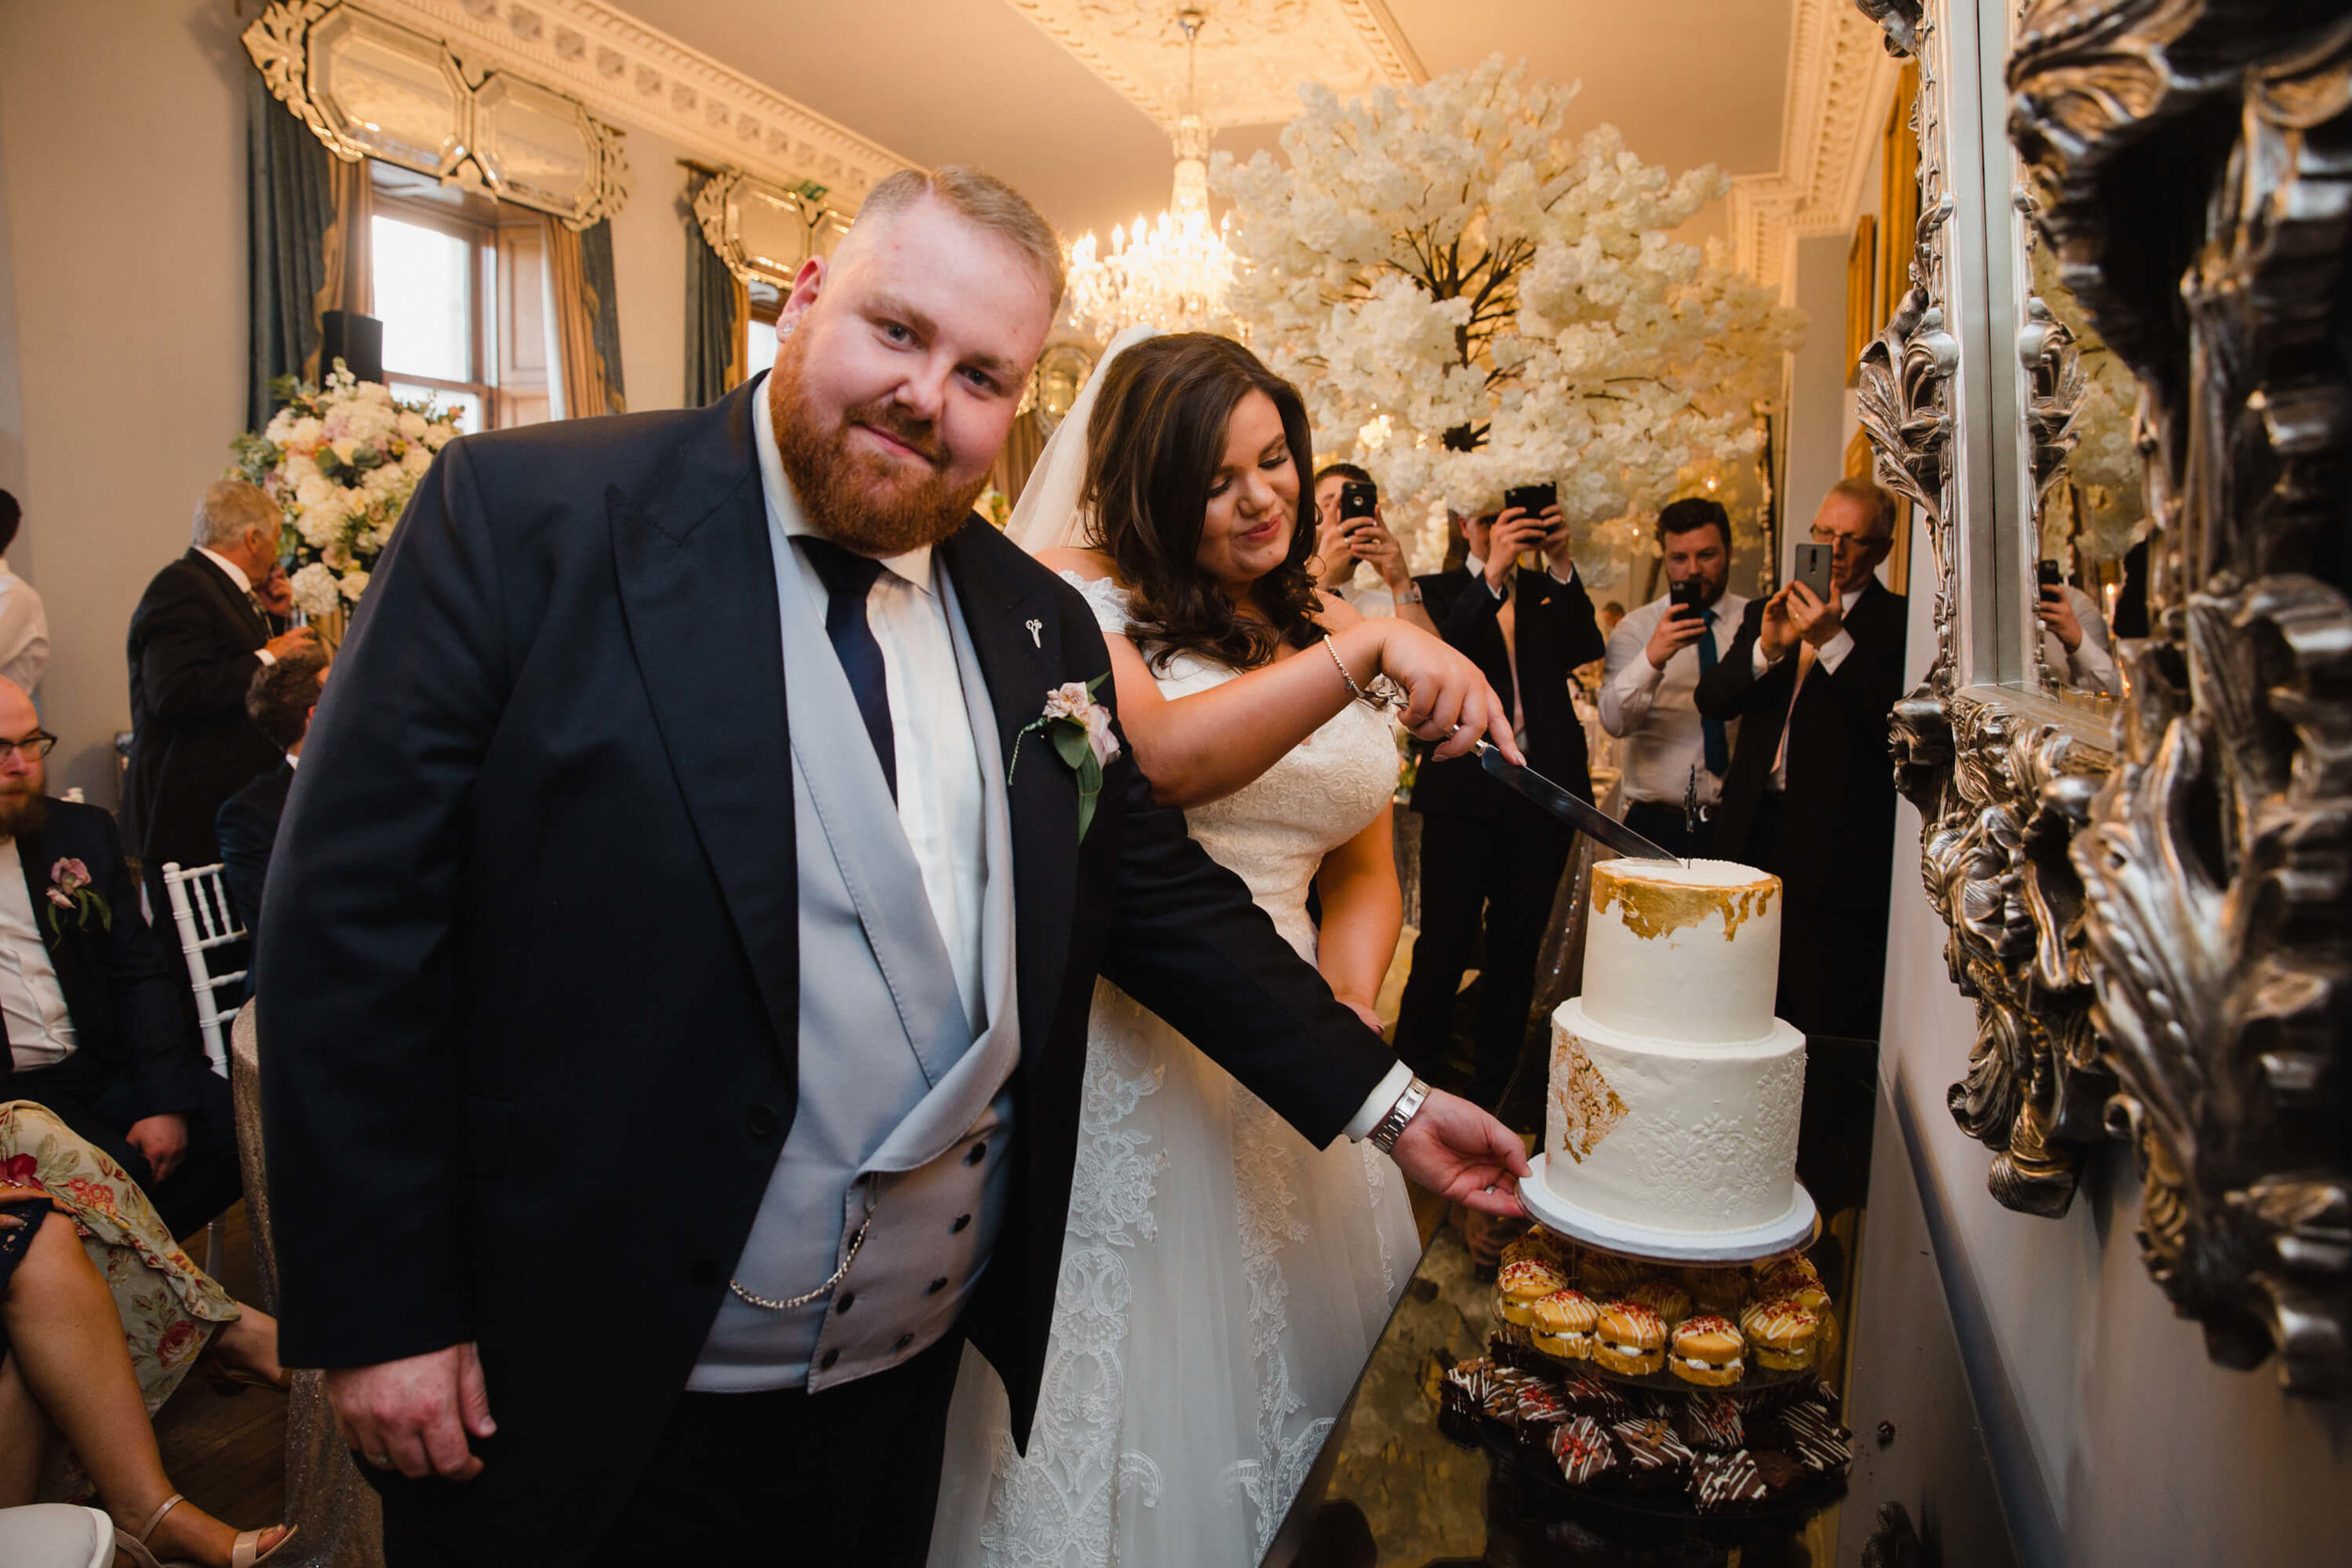 bride and groom cutting wedding cake at haigh hall